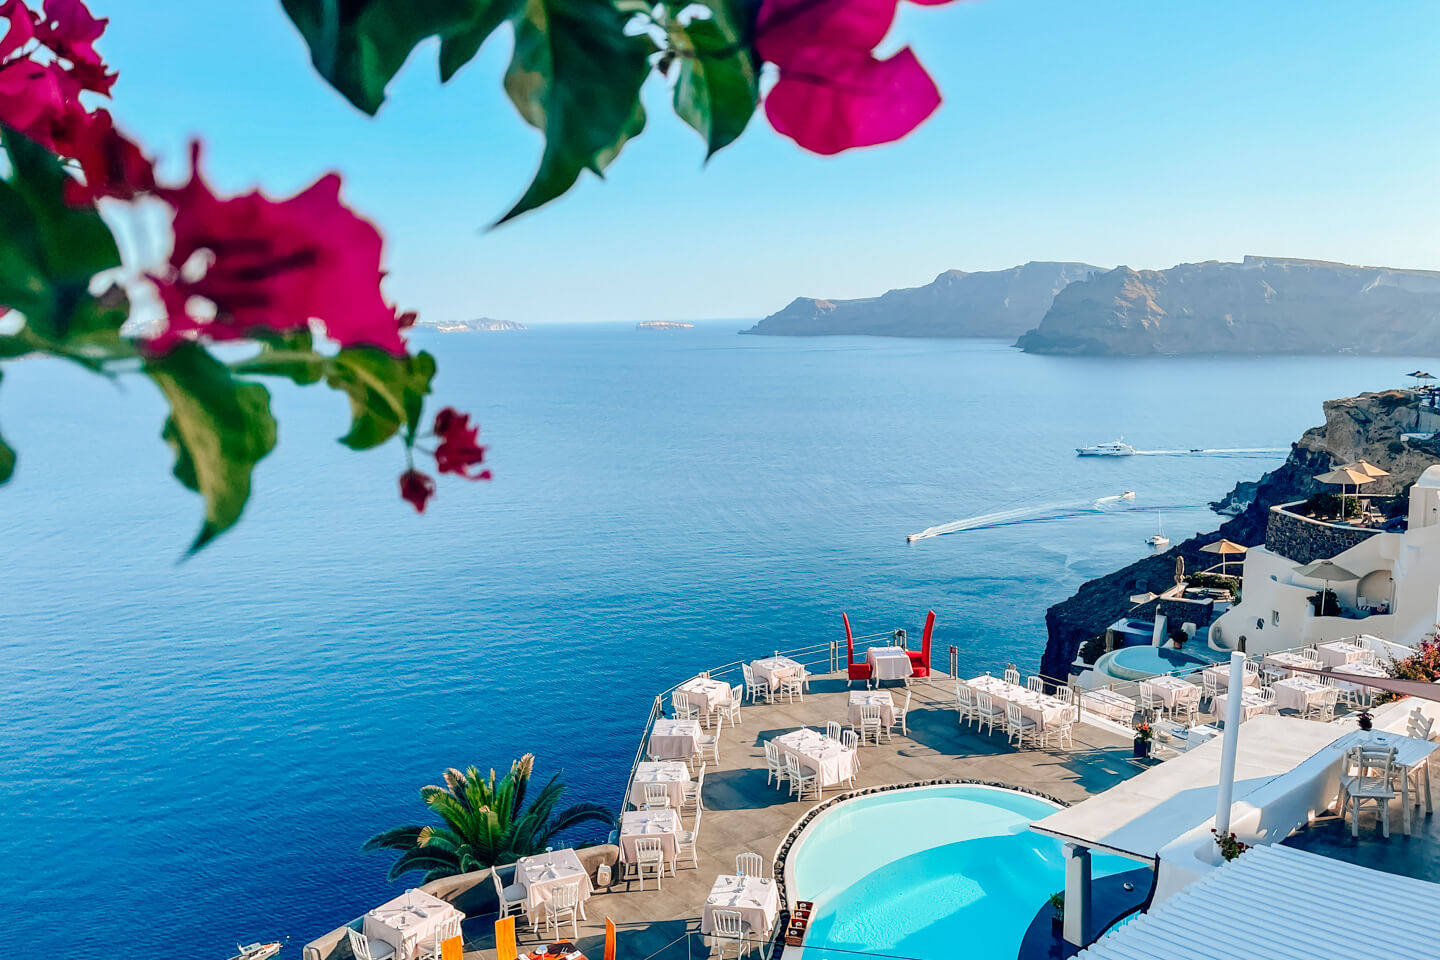 view over the andronis boutique hotel and the sea in santorini, greece